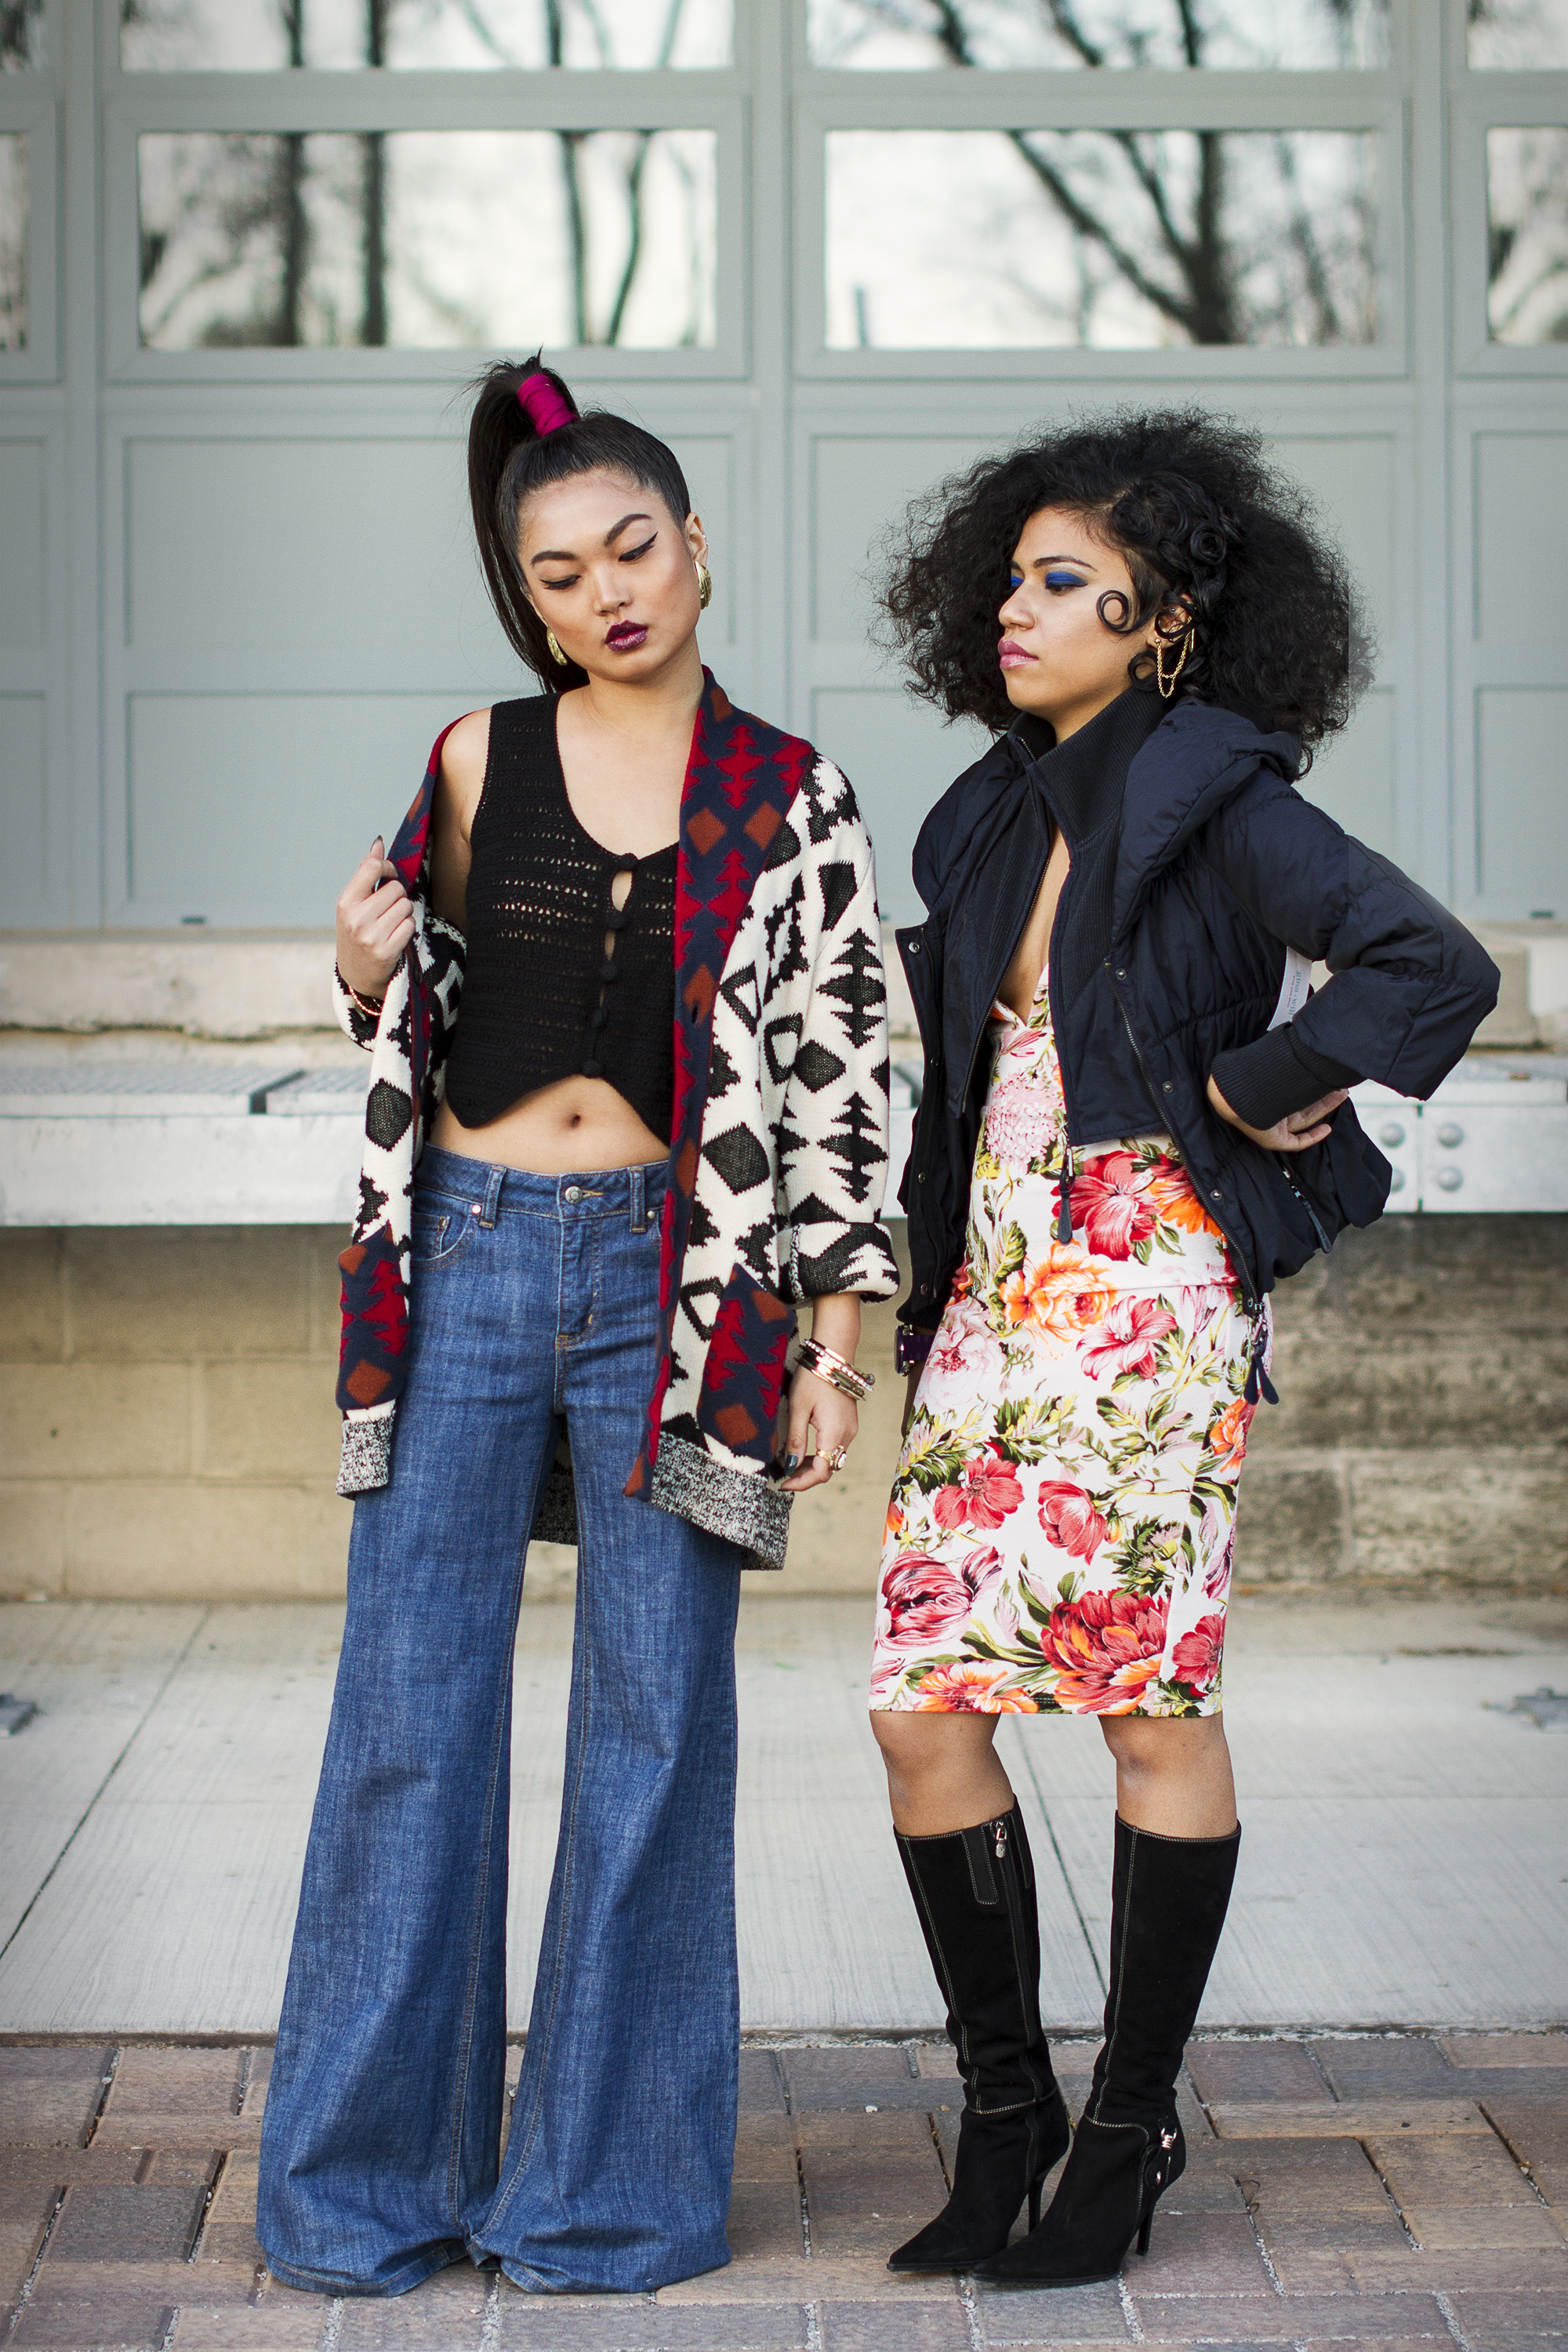 Boutiques - We have partnered with several boutiques that offer pre-loved, consigned, and second-hand clothing around the Twin Cities. Displaying the stylish finds each have to offer.